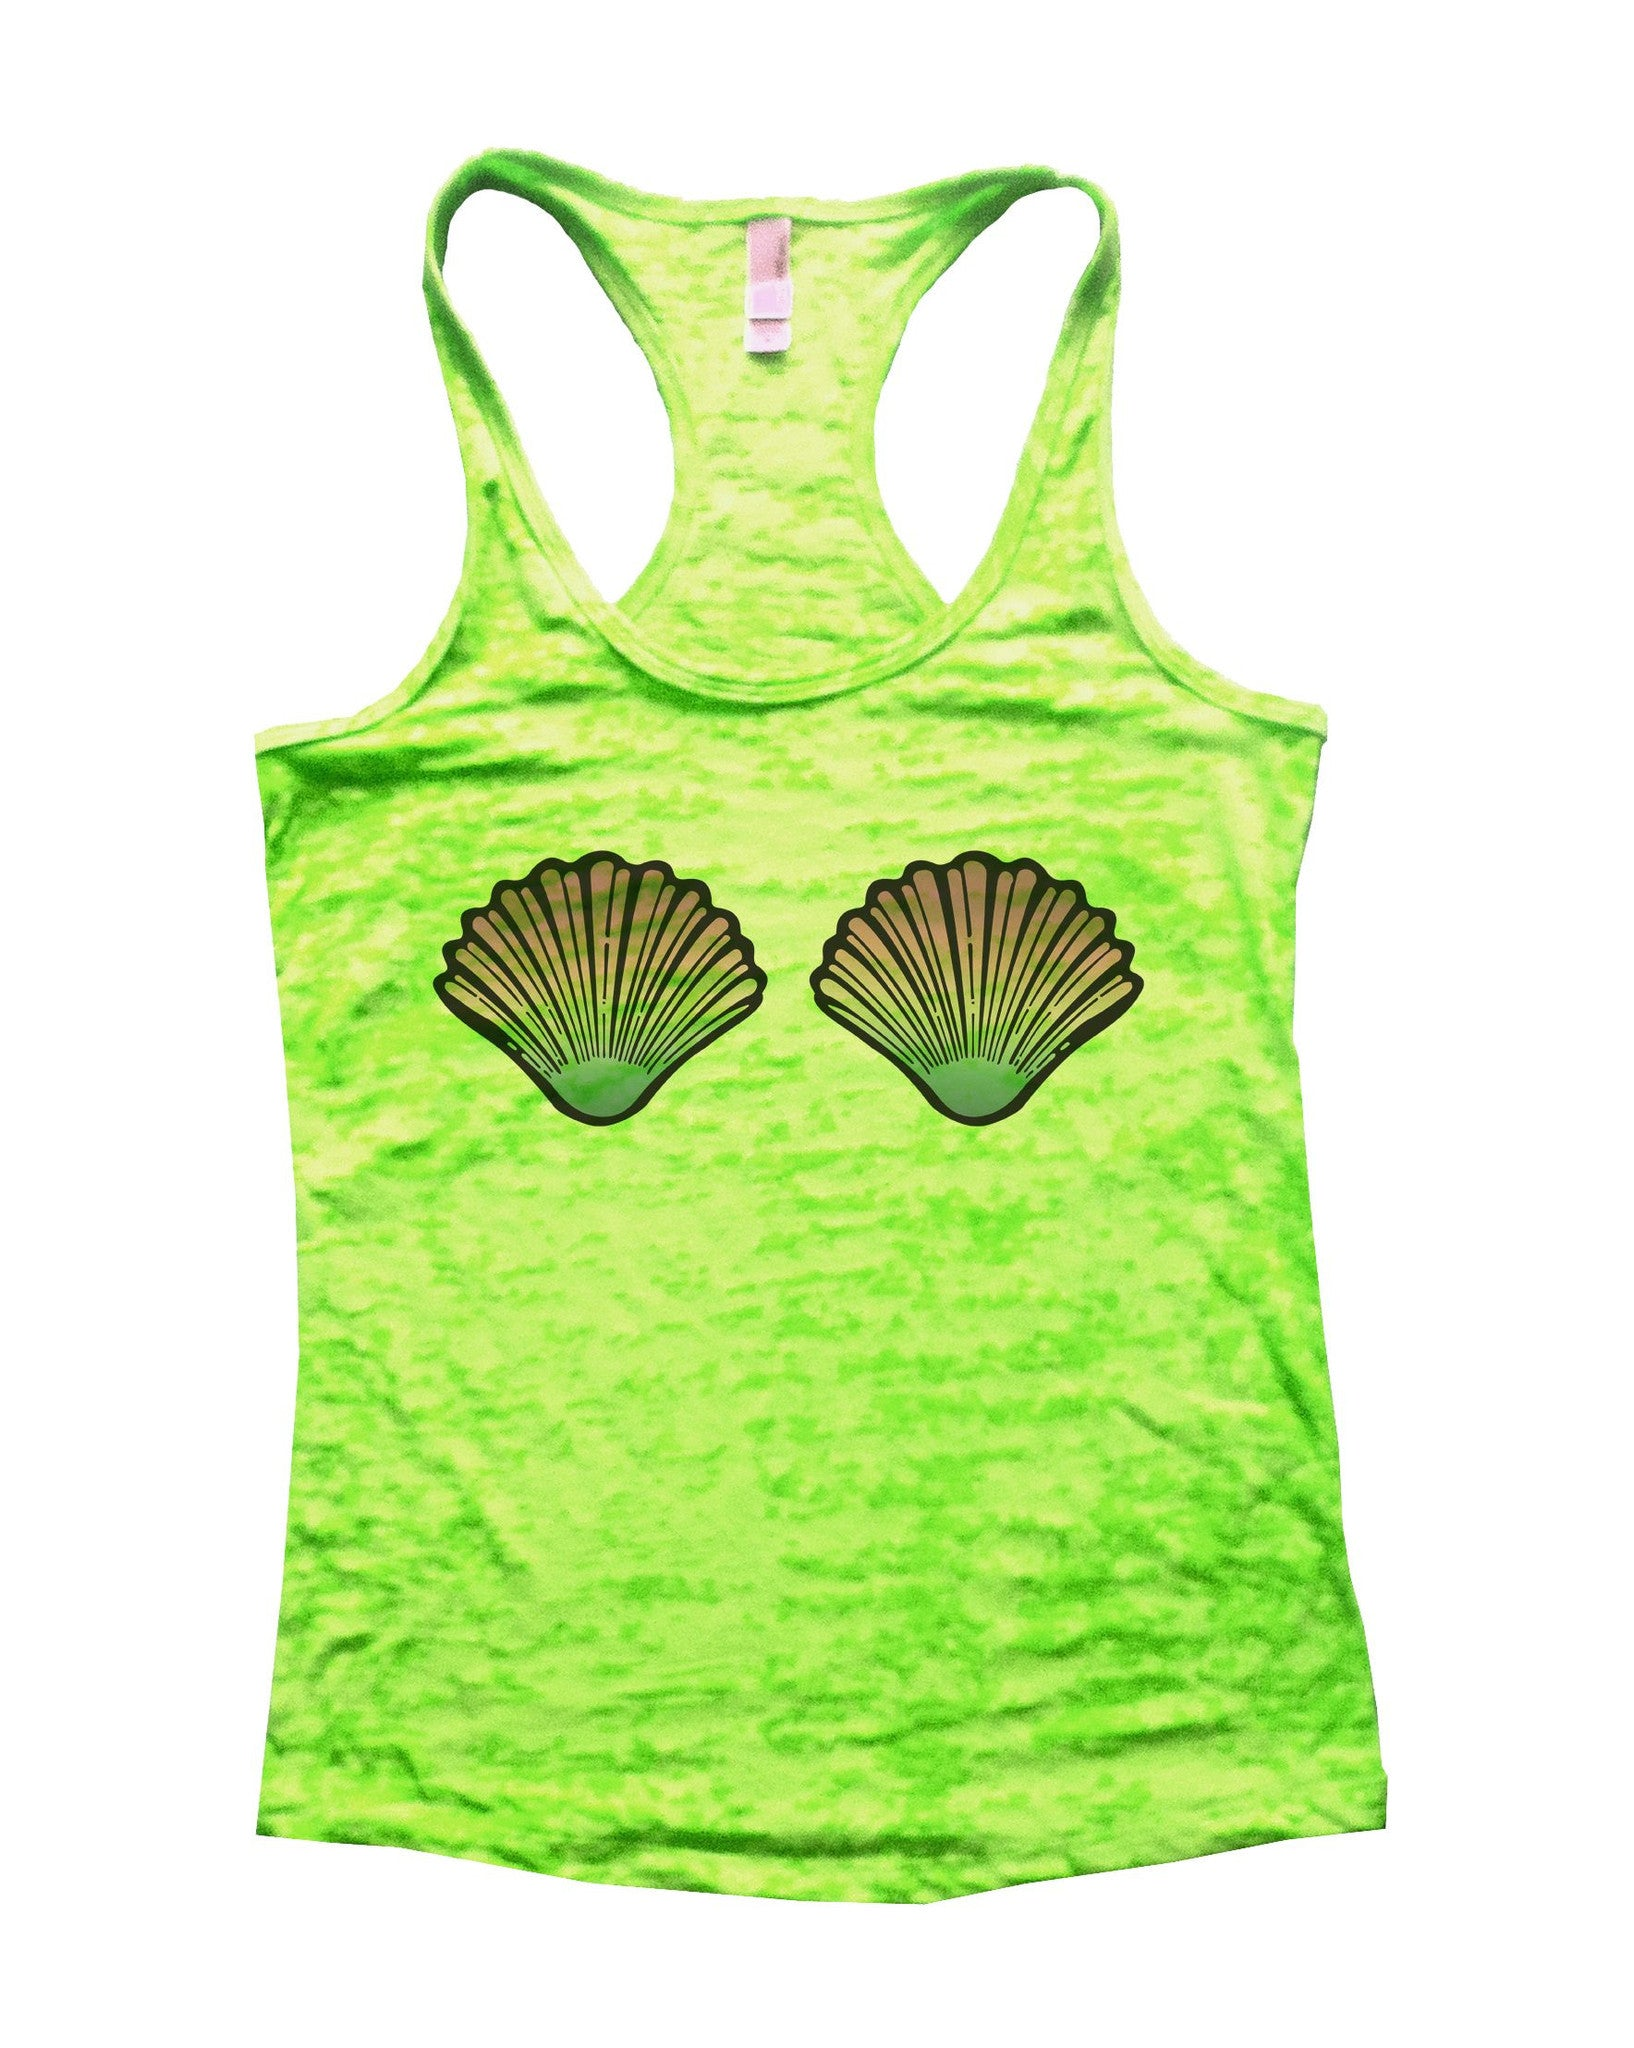 Shell Burnout Tank Top By BurnoutTankTops.com - 1080 - Funny Shirts Tank Tops Burnouts and Triblends  - 1